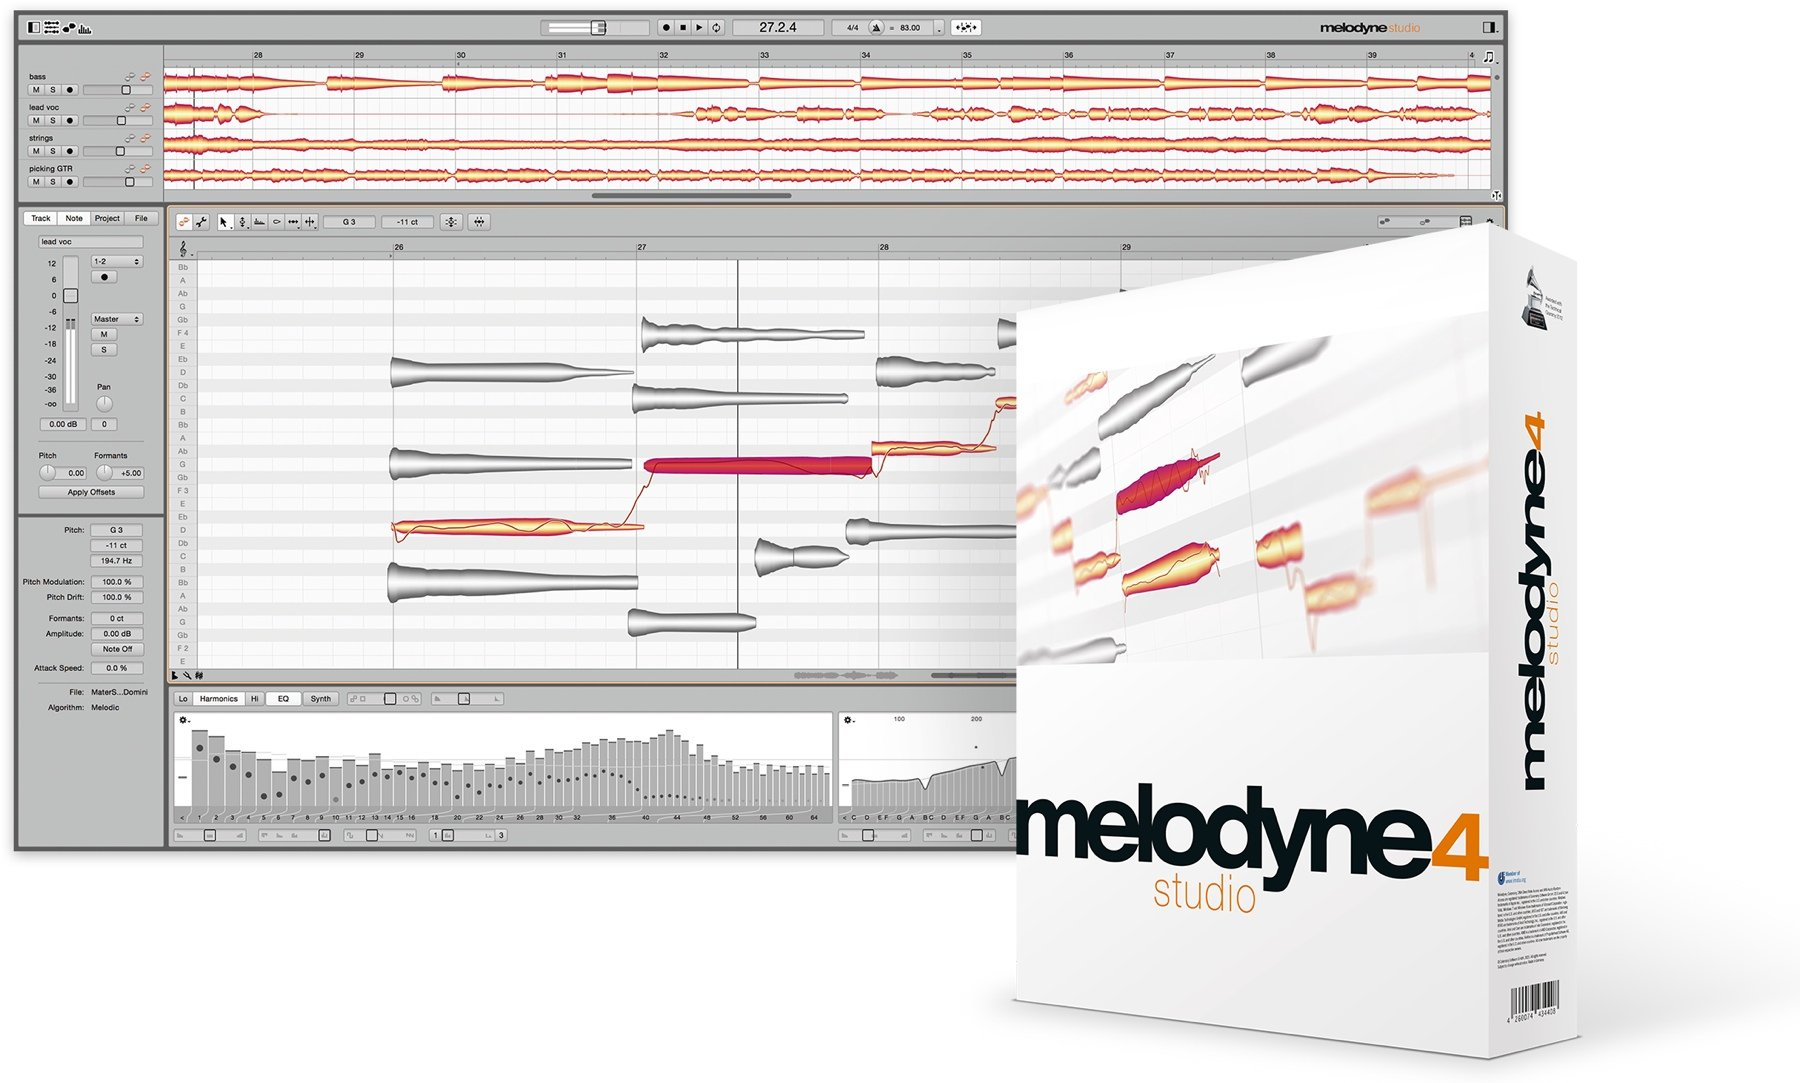 melodyne crack torrent